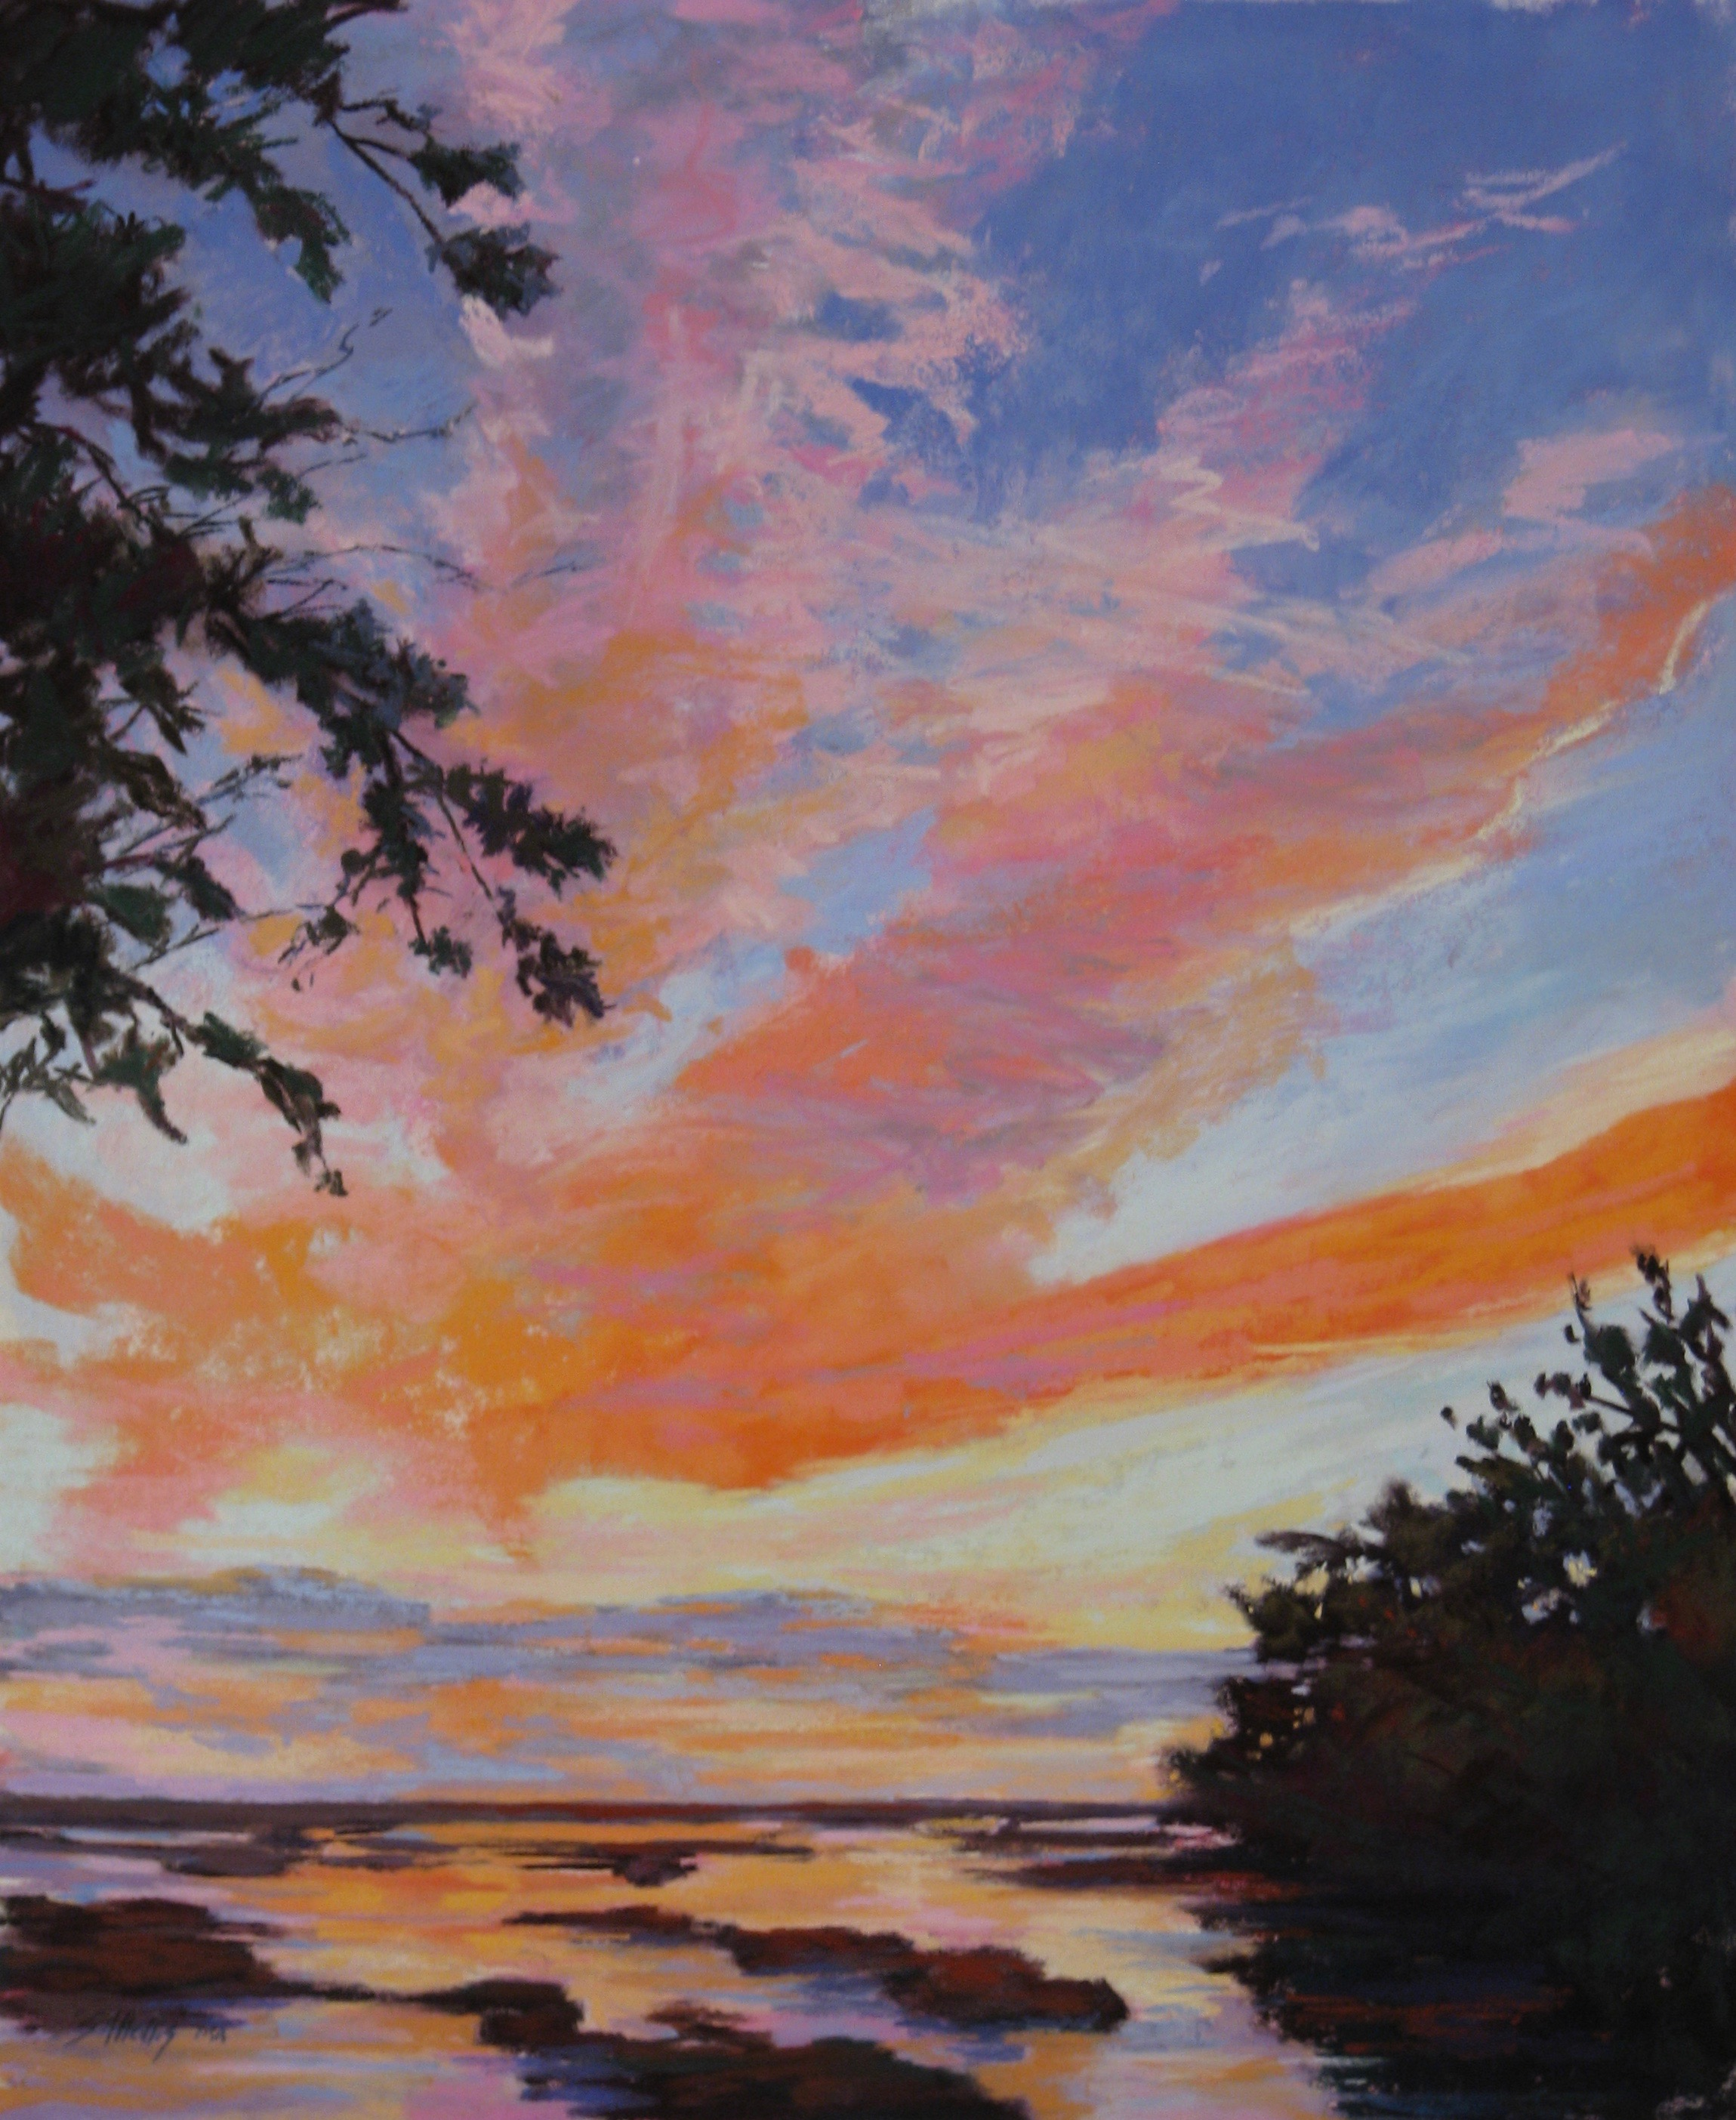 Pastel Society of Cape Cod - For Pastels Only - Cape Cod Cultural Center, So Yarmouth MAJuly 19 - August 11d